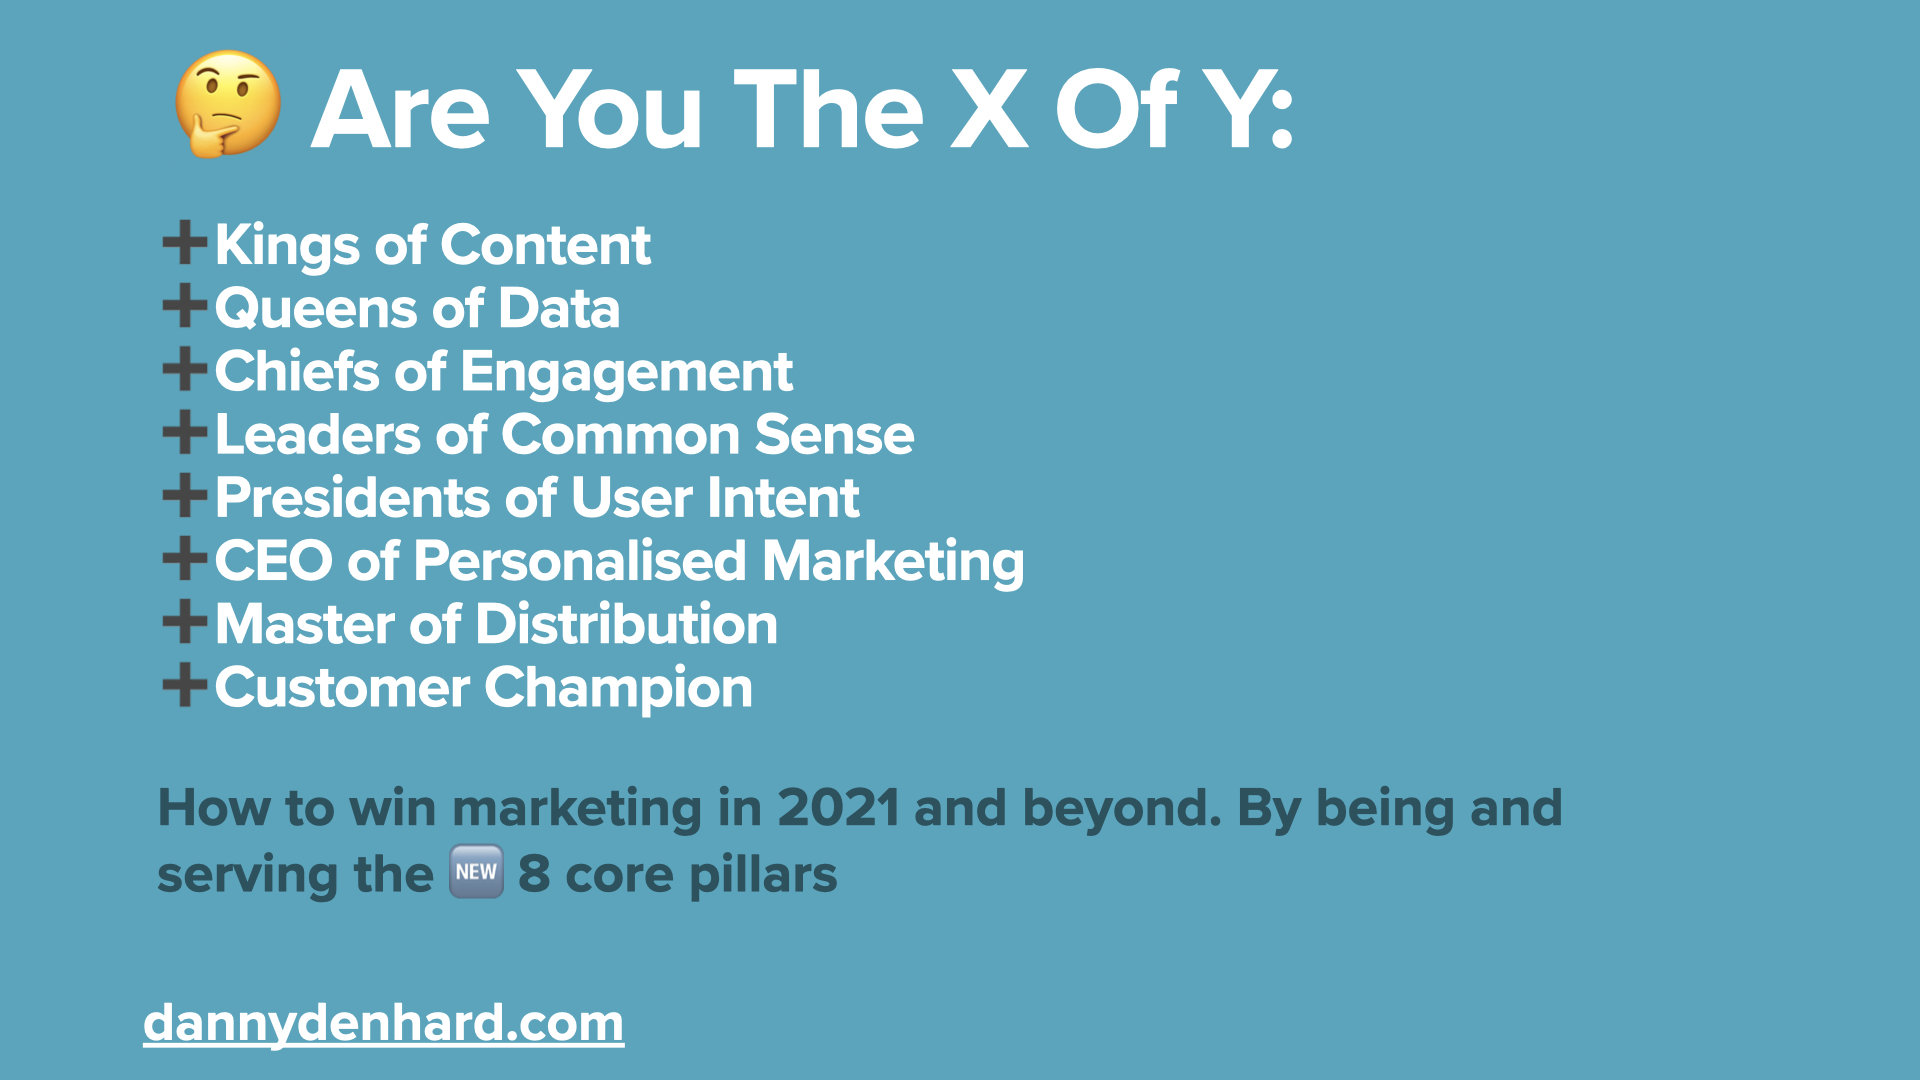 are you the x of y?